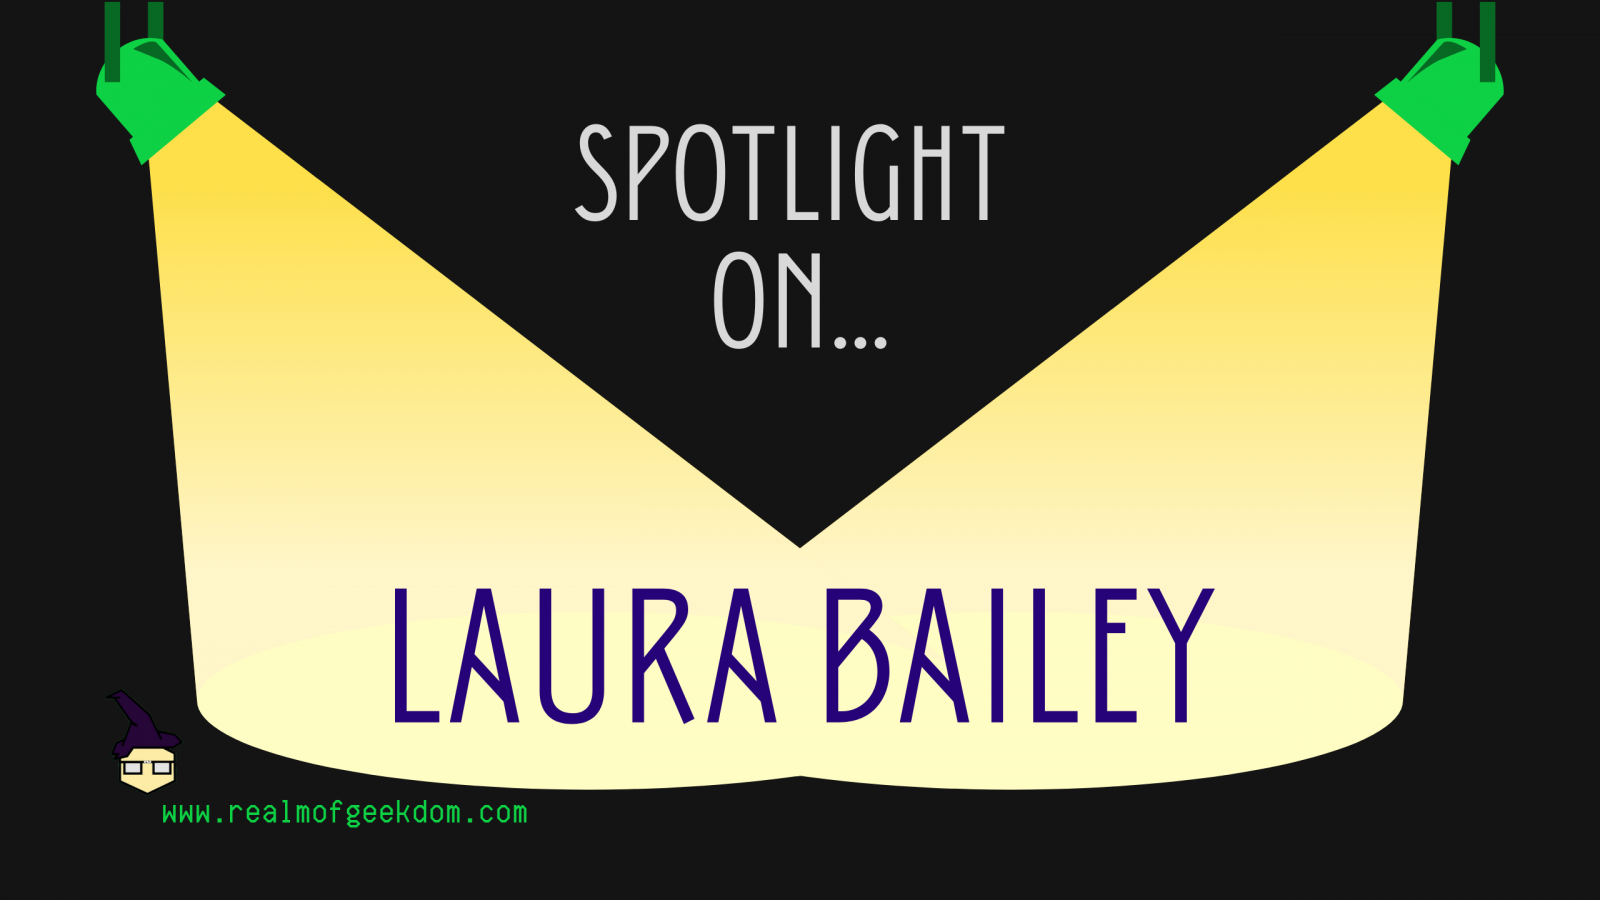 Spotlight on Laura Bailey